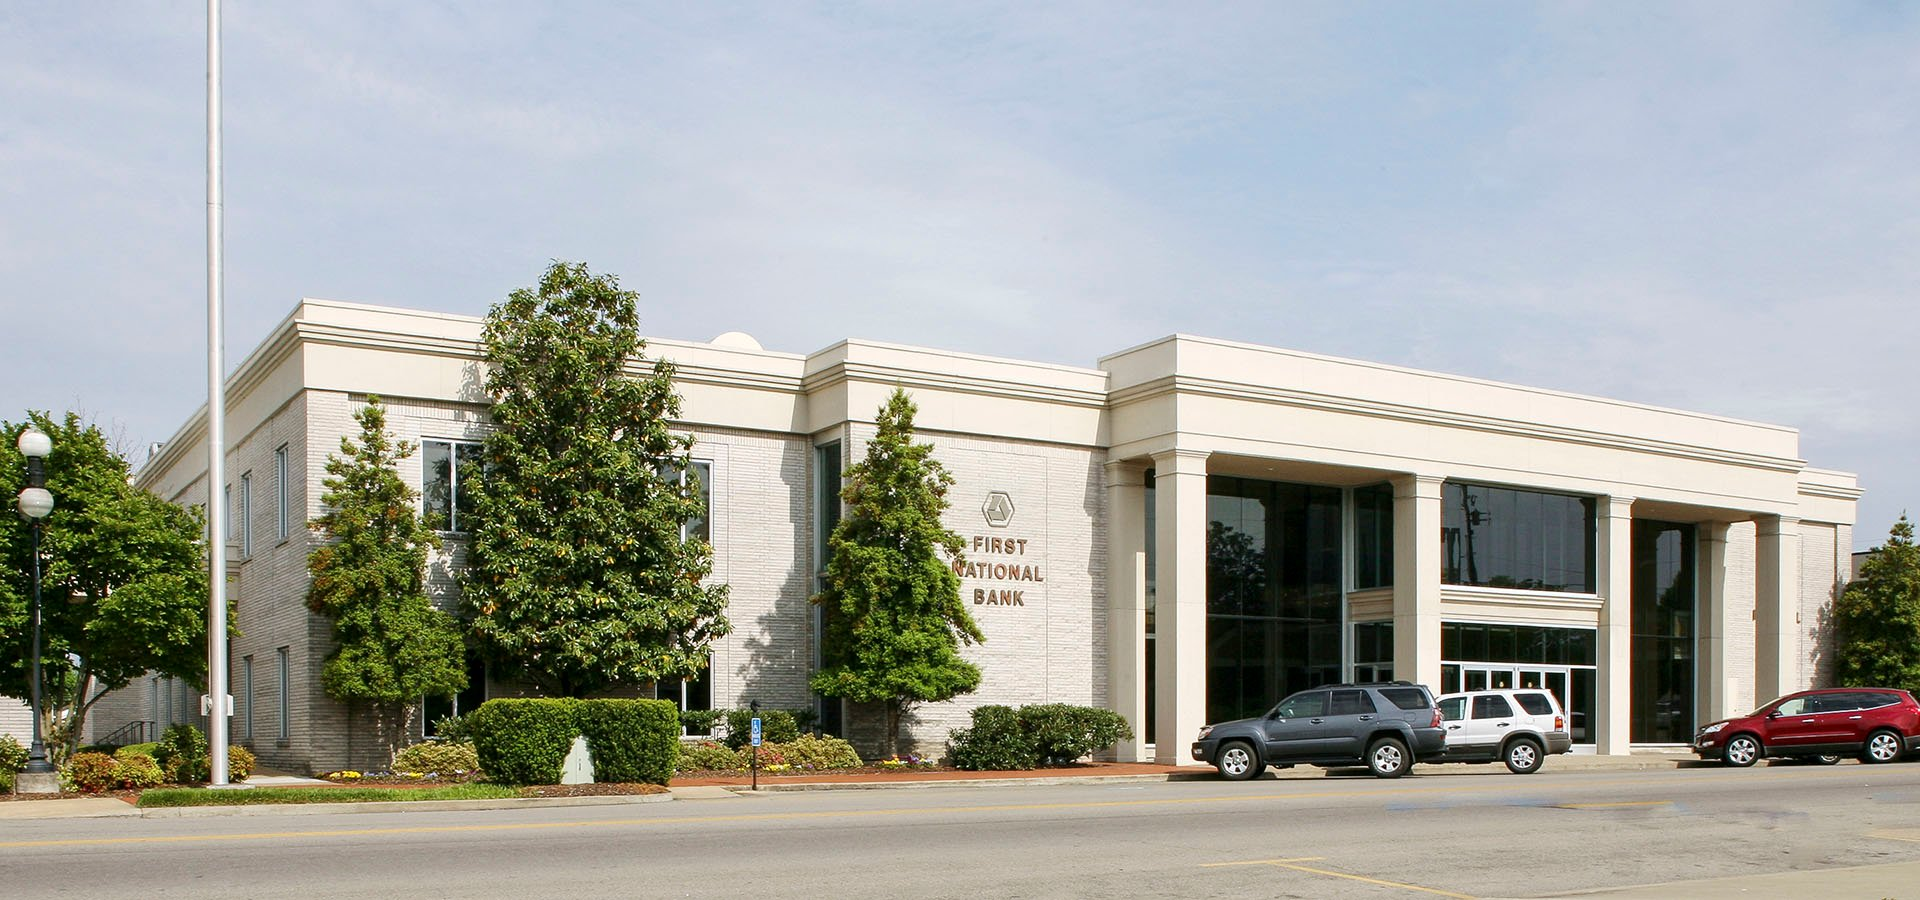 First National Bank of Pulaski | Pulaski, Tennessee | Brindley Construction, LLC.